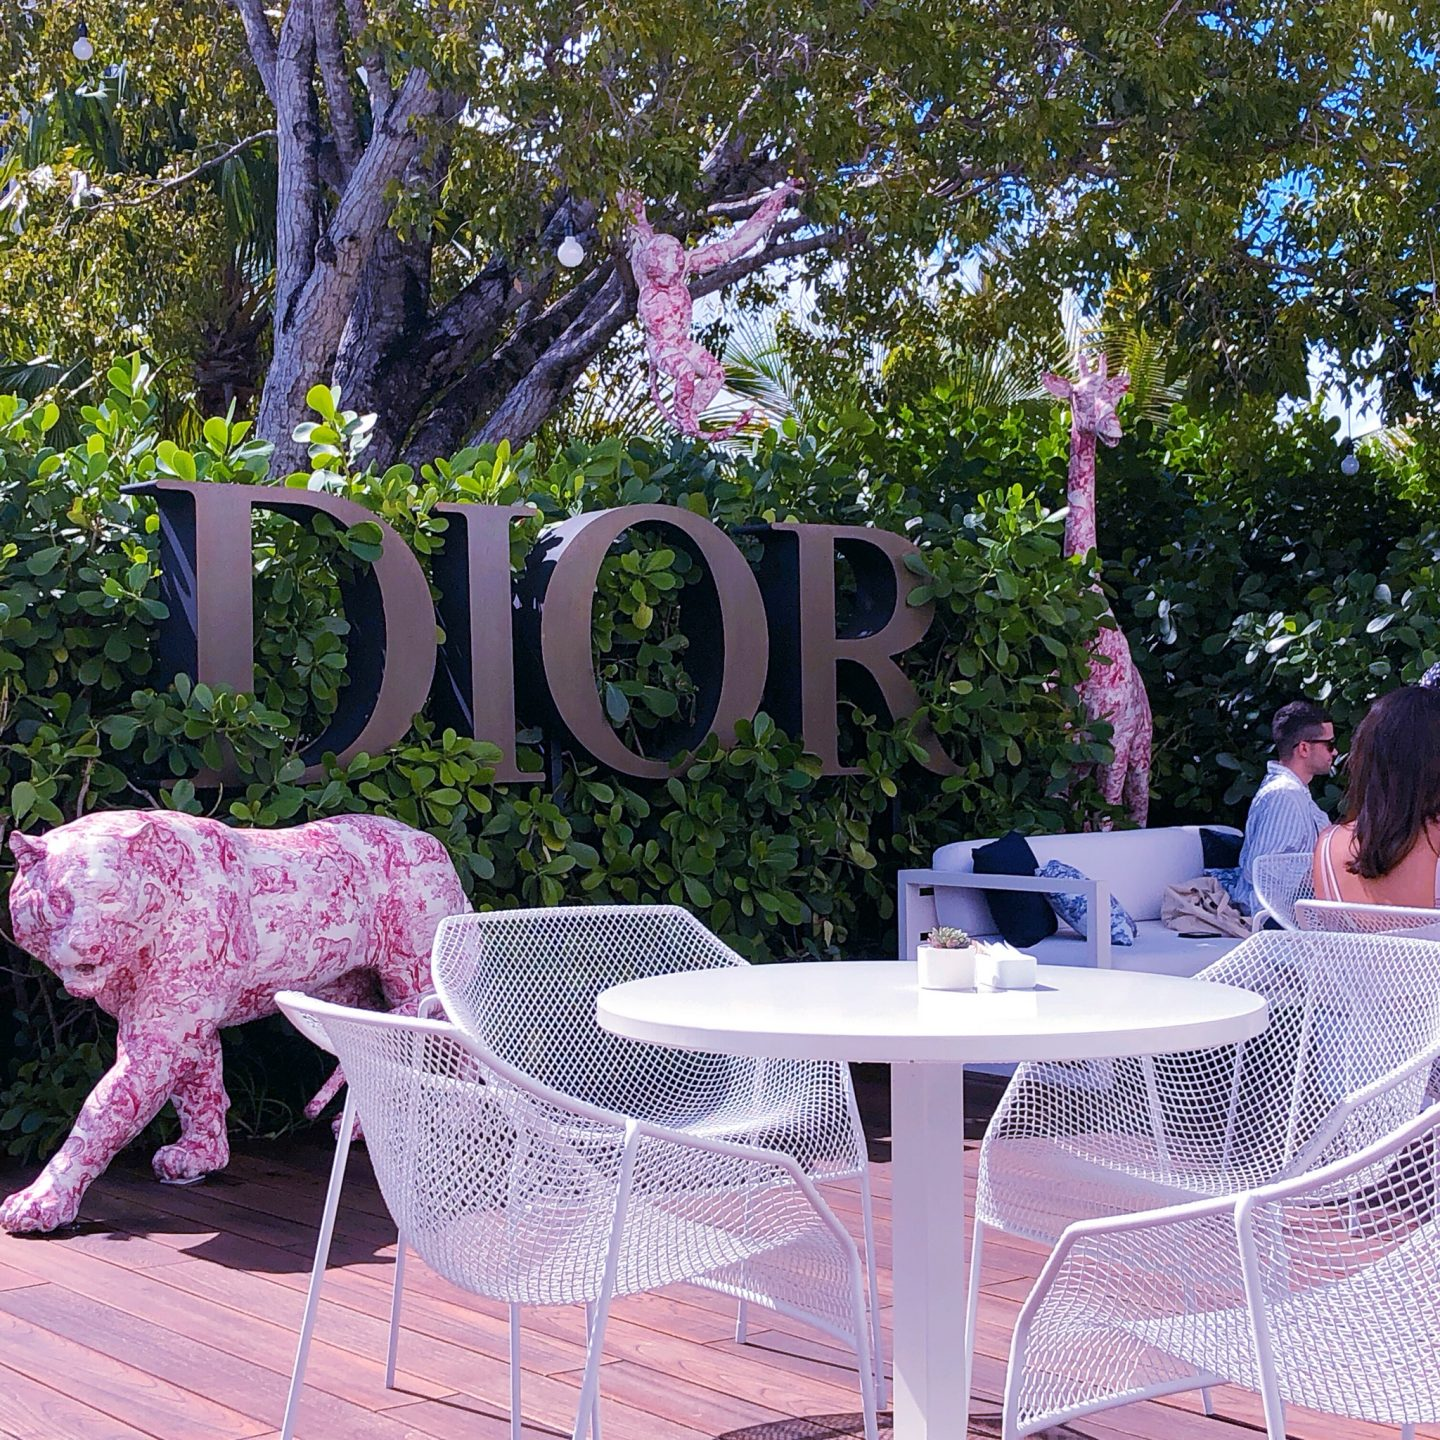 Dior Cafe Miami, cafe dior, cafe dior miami, what cafe dior miami looks like, dior jungle,